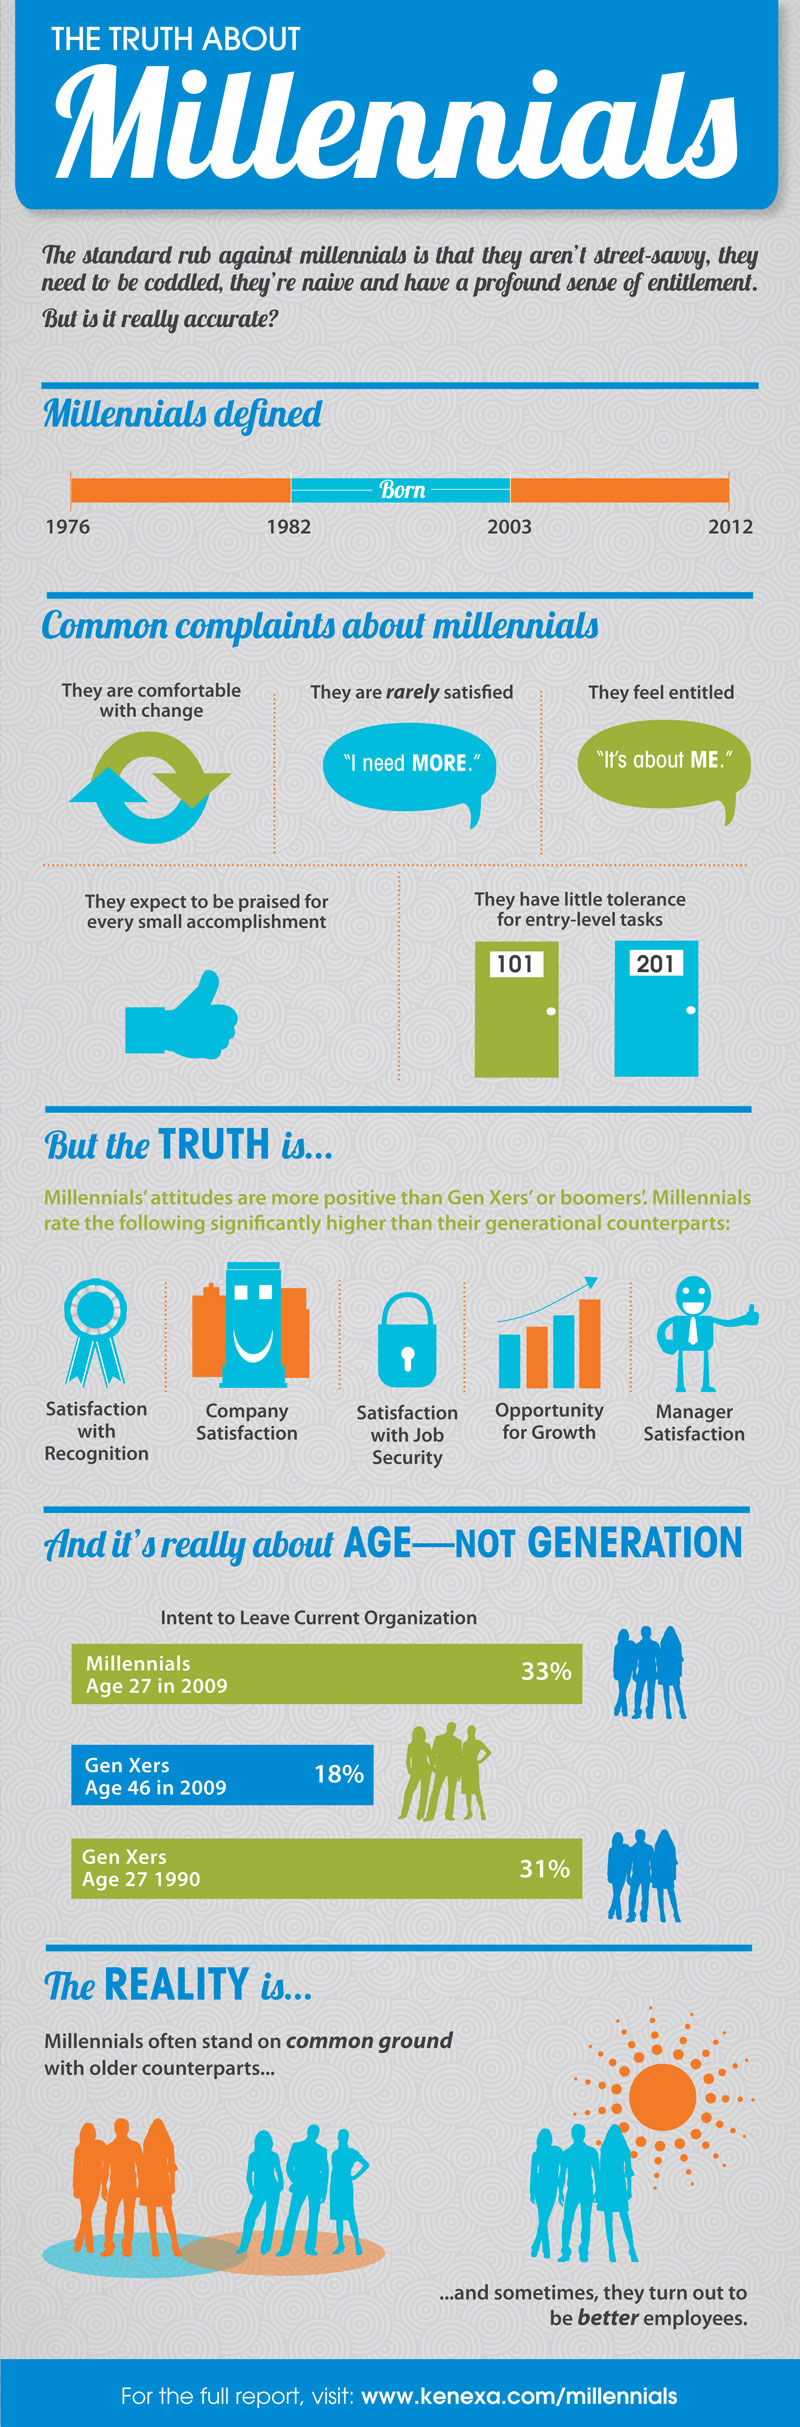 check out this infographic to see which perceptions are accurate check out this infographic to see which perceptions are accurate about millennials